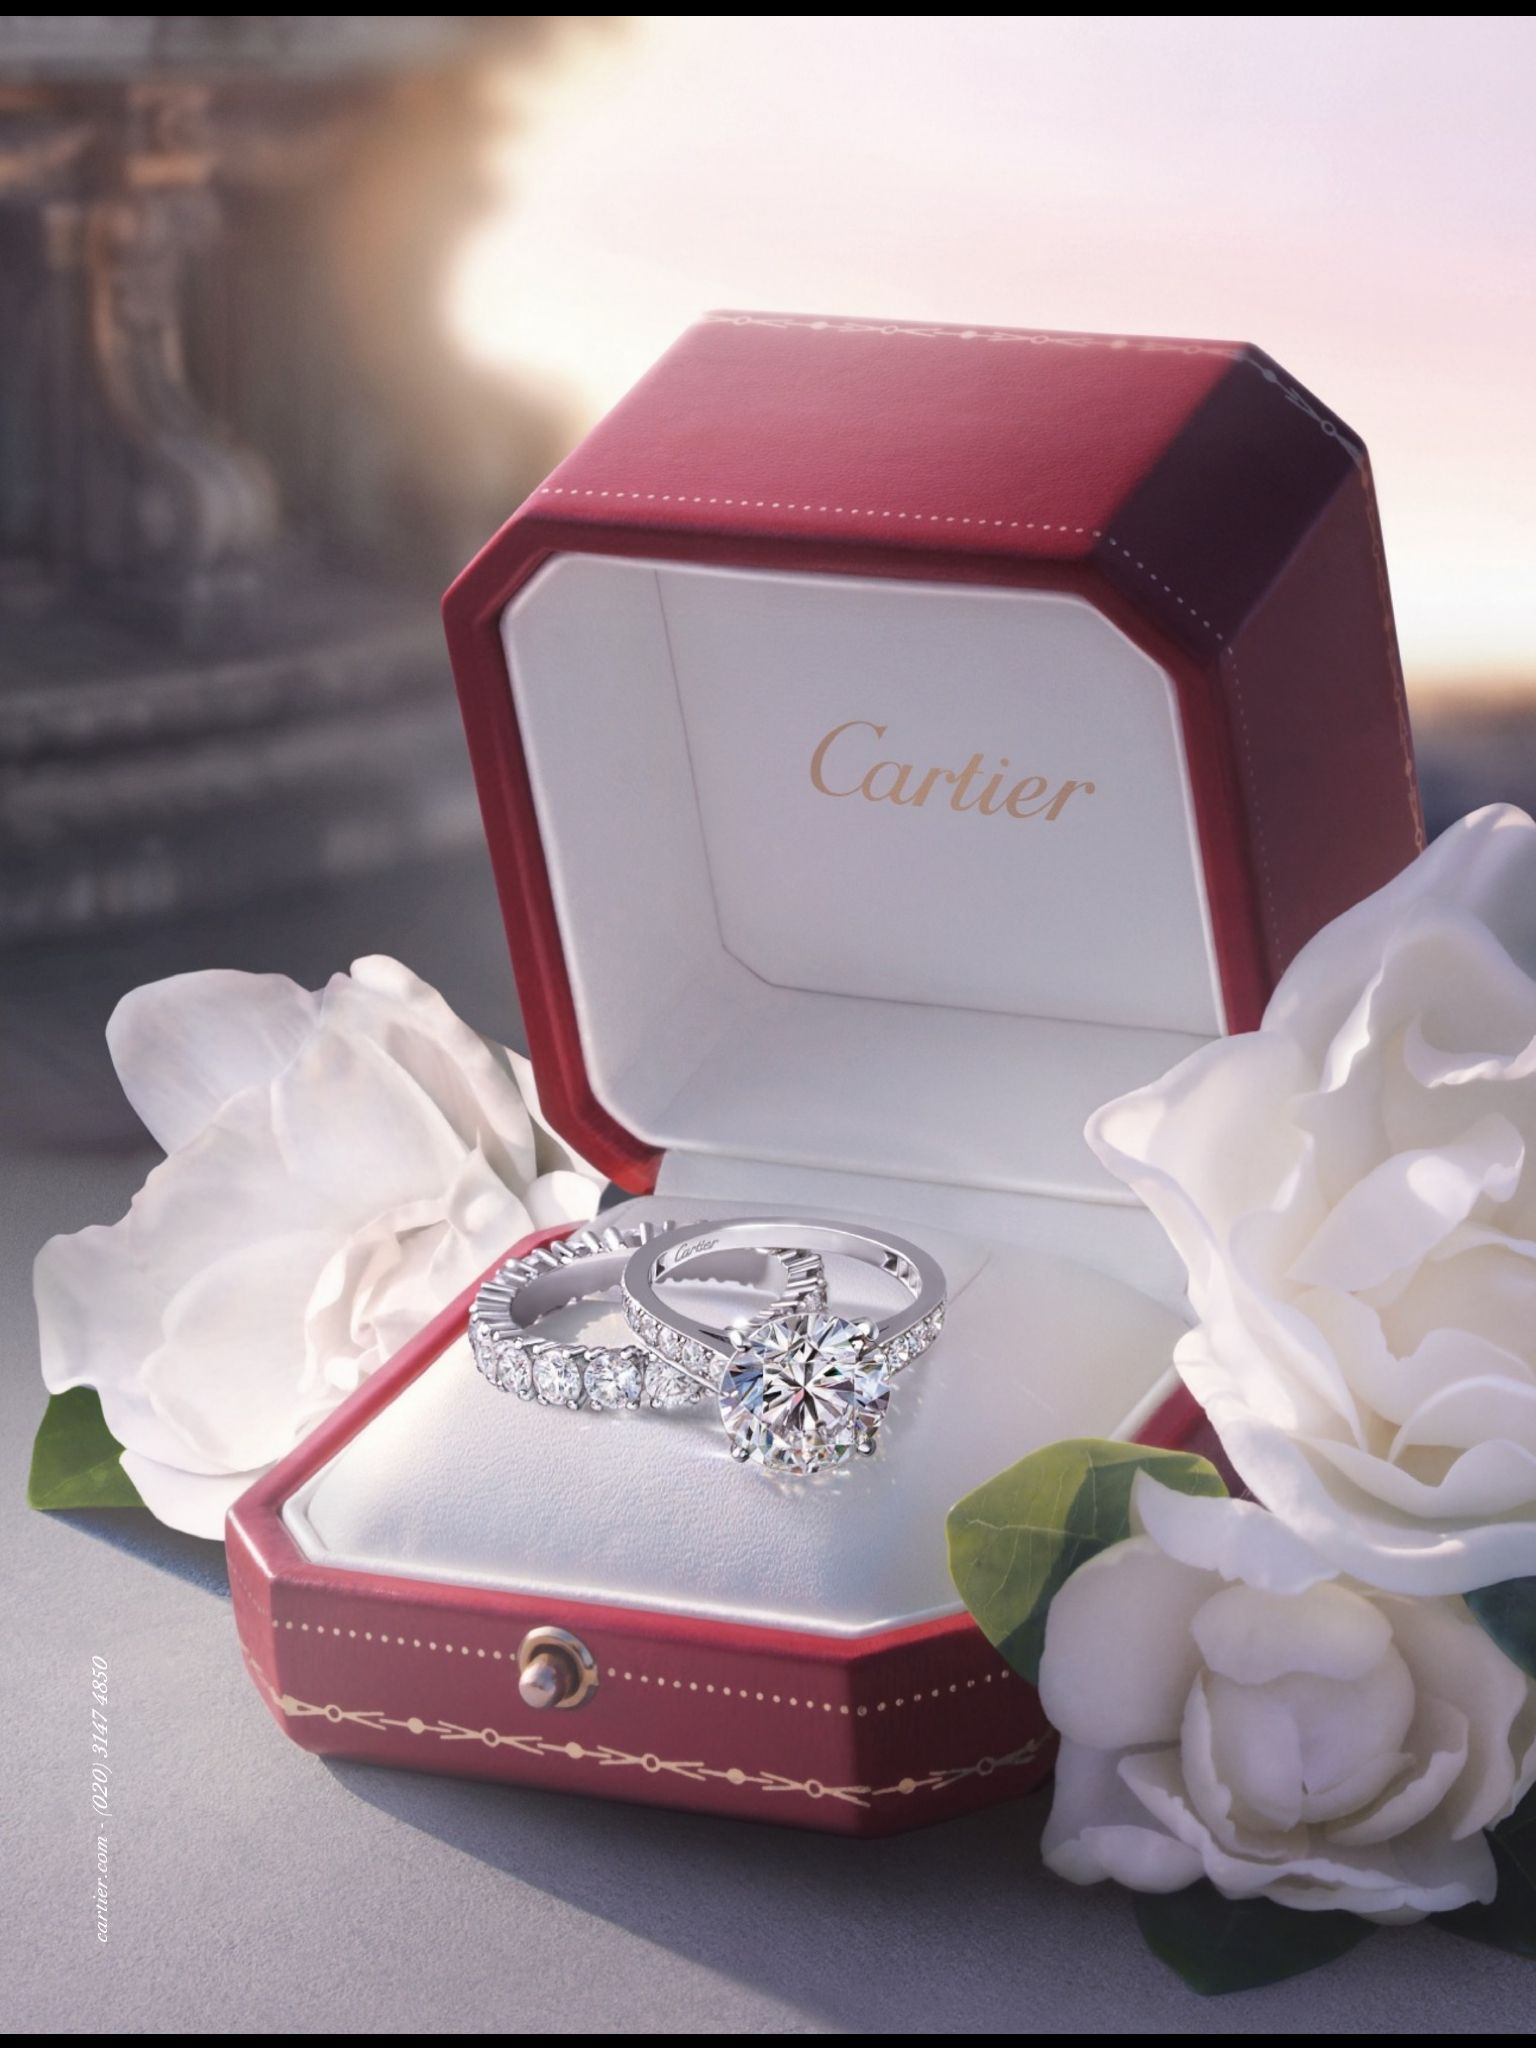 Cartier Engagement Ring Luxury De Noivado